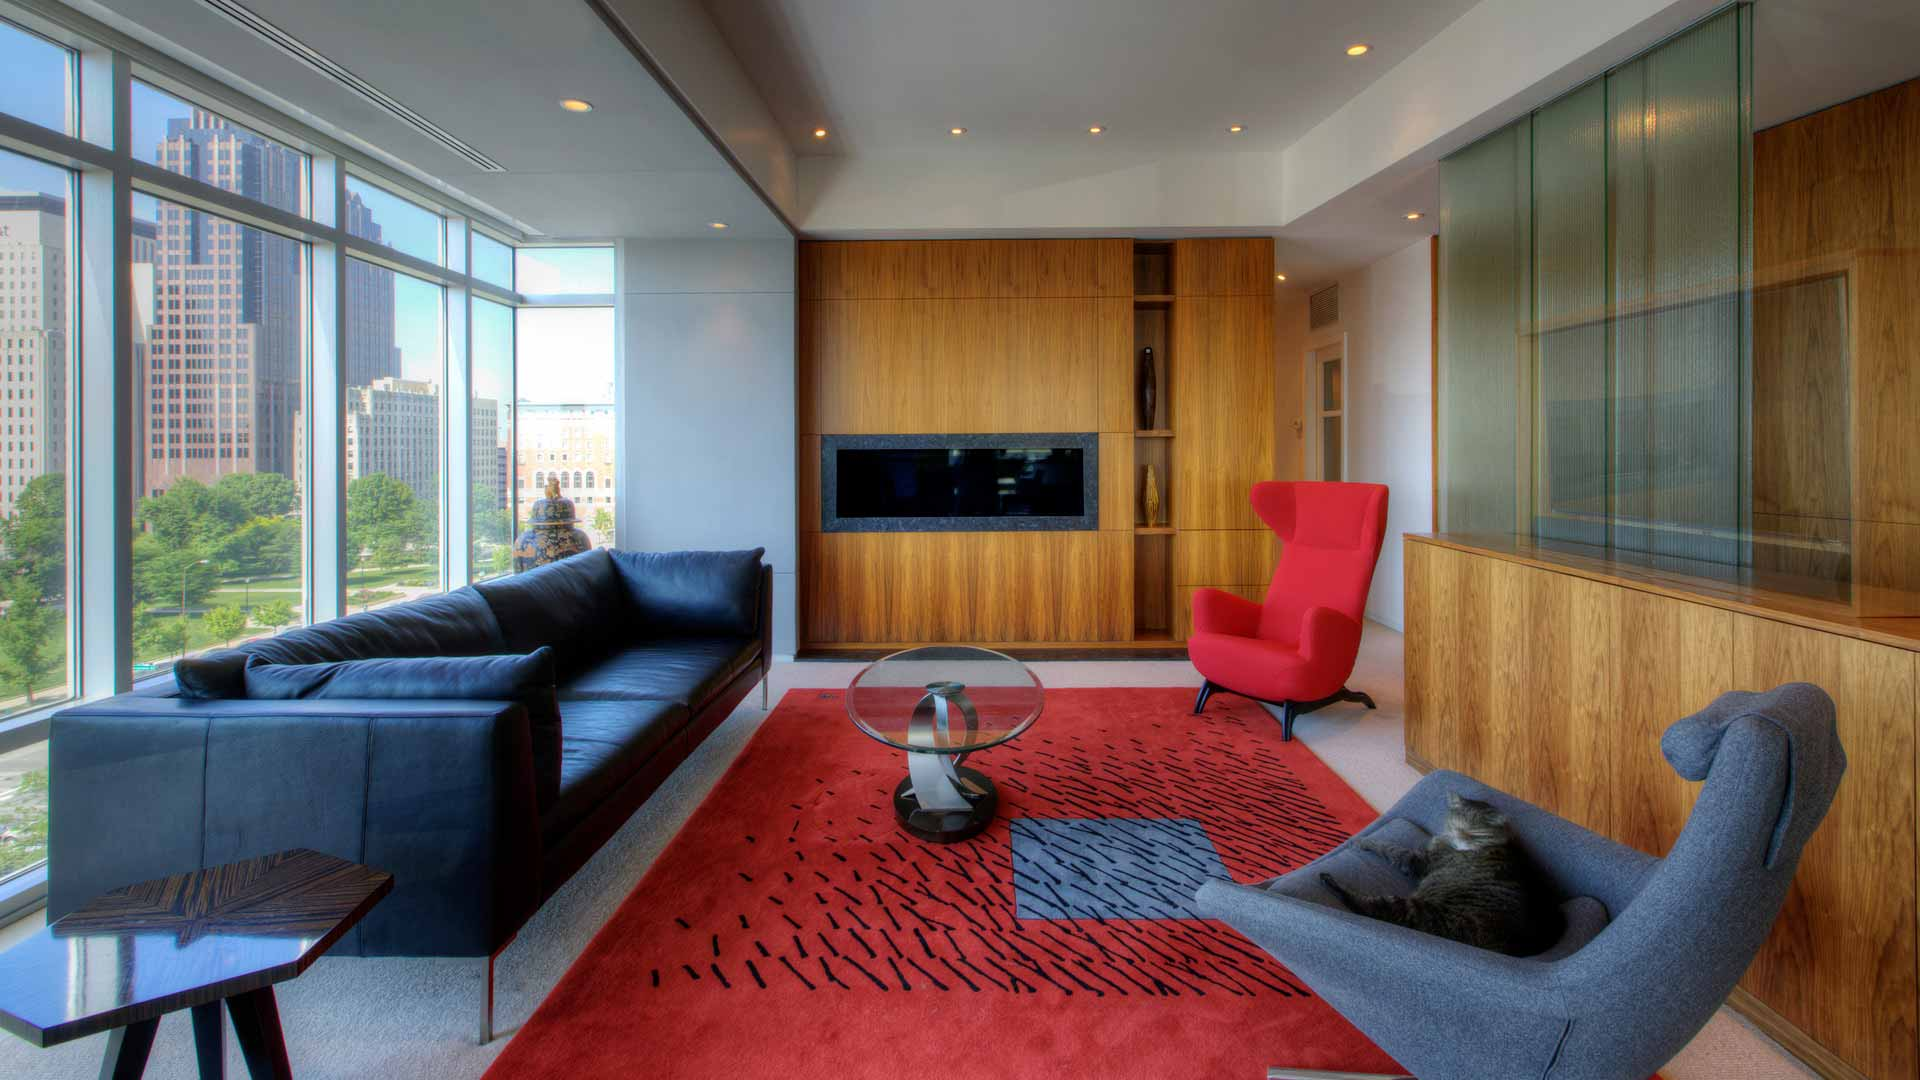 Urban Mid Rise Flat - Main Living Space - HAUS Architecture, Christopher Short, Indianapolis Architect